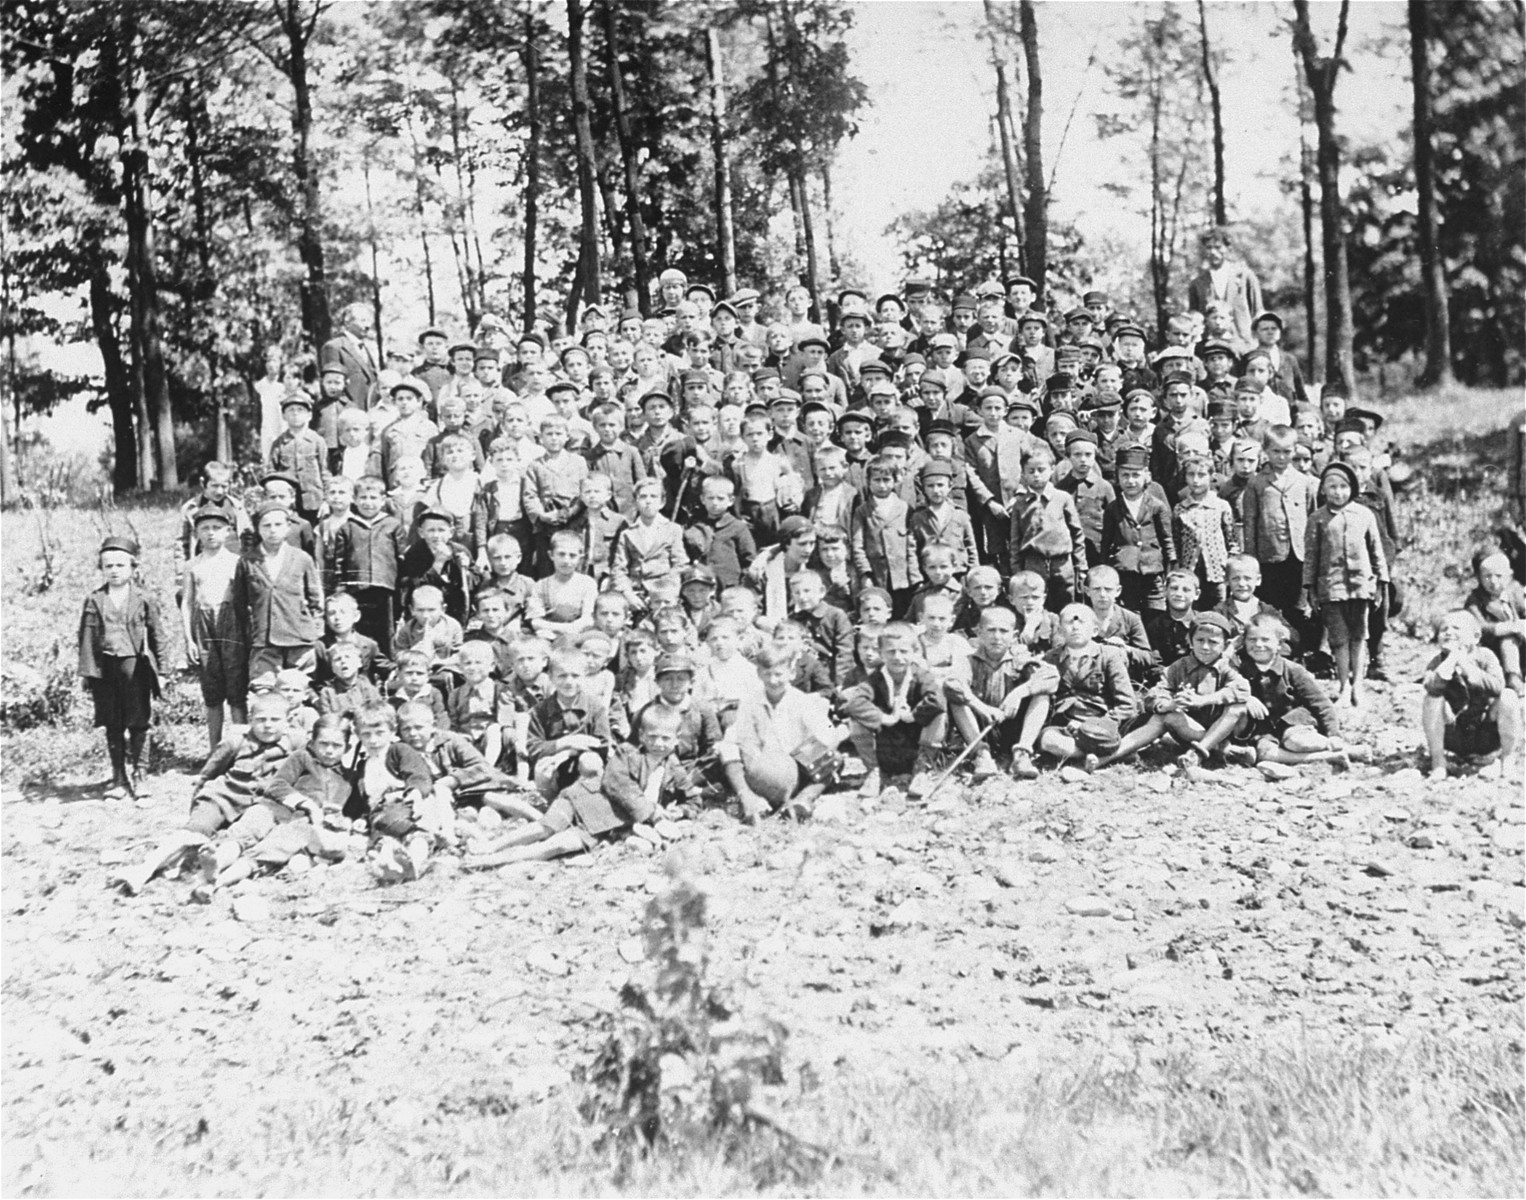 Group portrait of Jewish and non-Jewish children on a school outing in Oswiecim, Poland.   According to the donor, the boys wearing round dark caps are from Orthodox Jewish homes; the ones with flat caps are from less religious Jewish homes; and the ones with the four-cornered caps and without head covering are not Jewish.  The site of this outing was later Birkenau, part of the Auschwitz concentration camp.